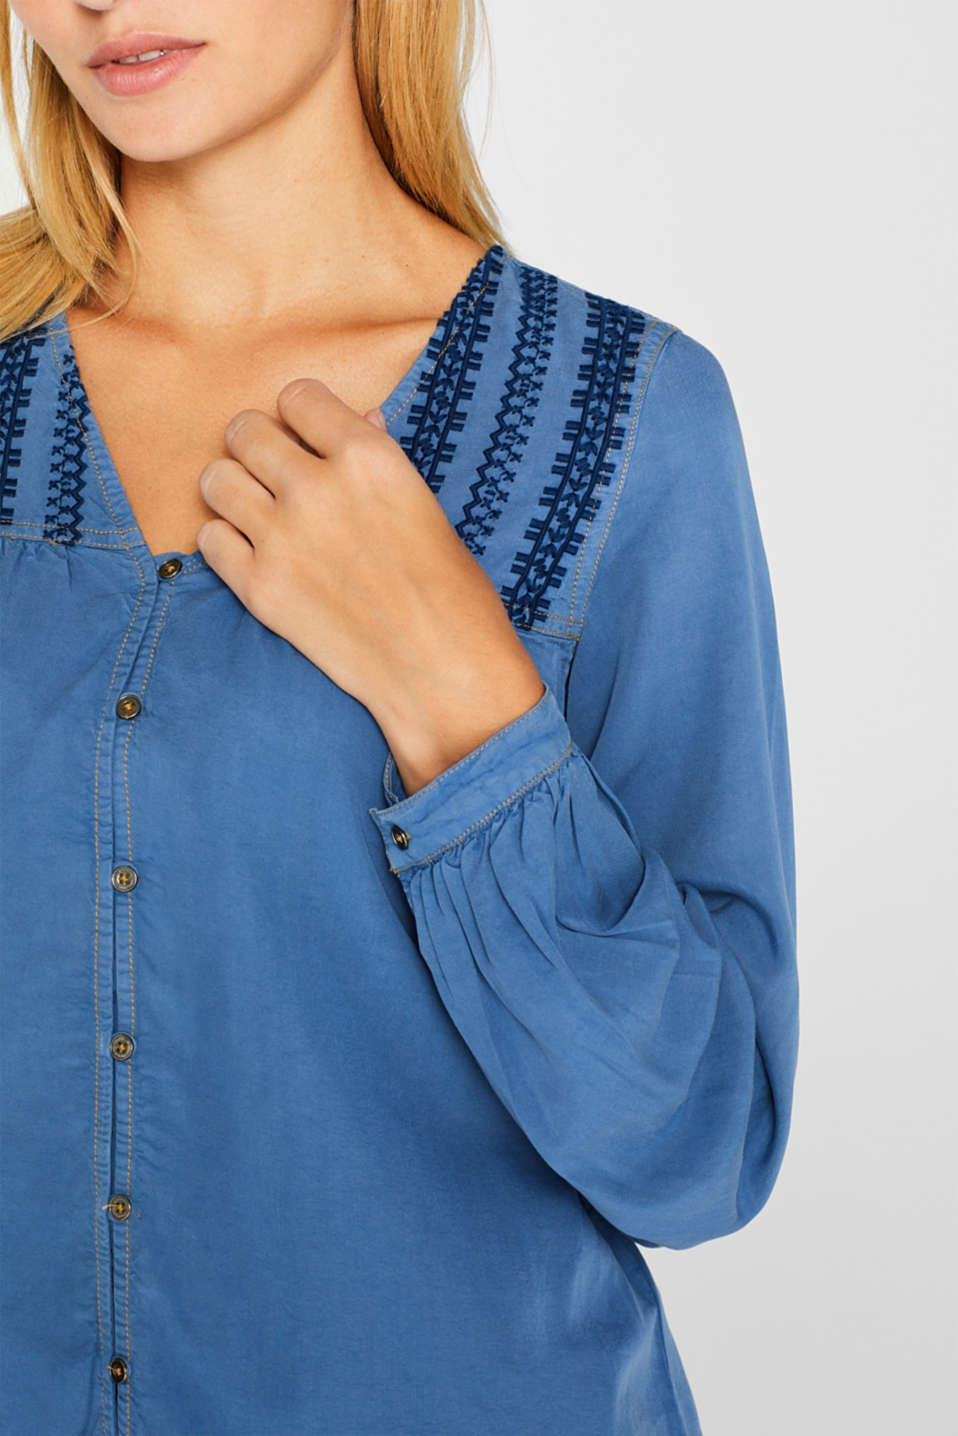 Tunic blouse made of lyocell, GREY BLUE, detail image number 2